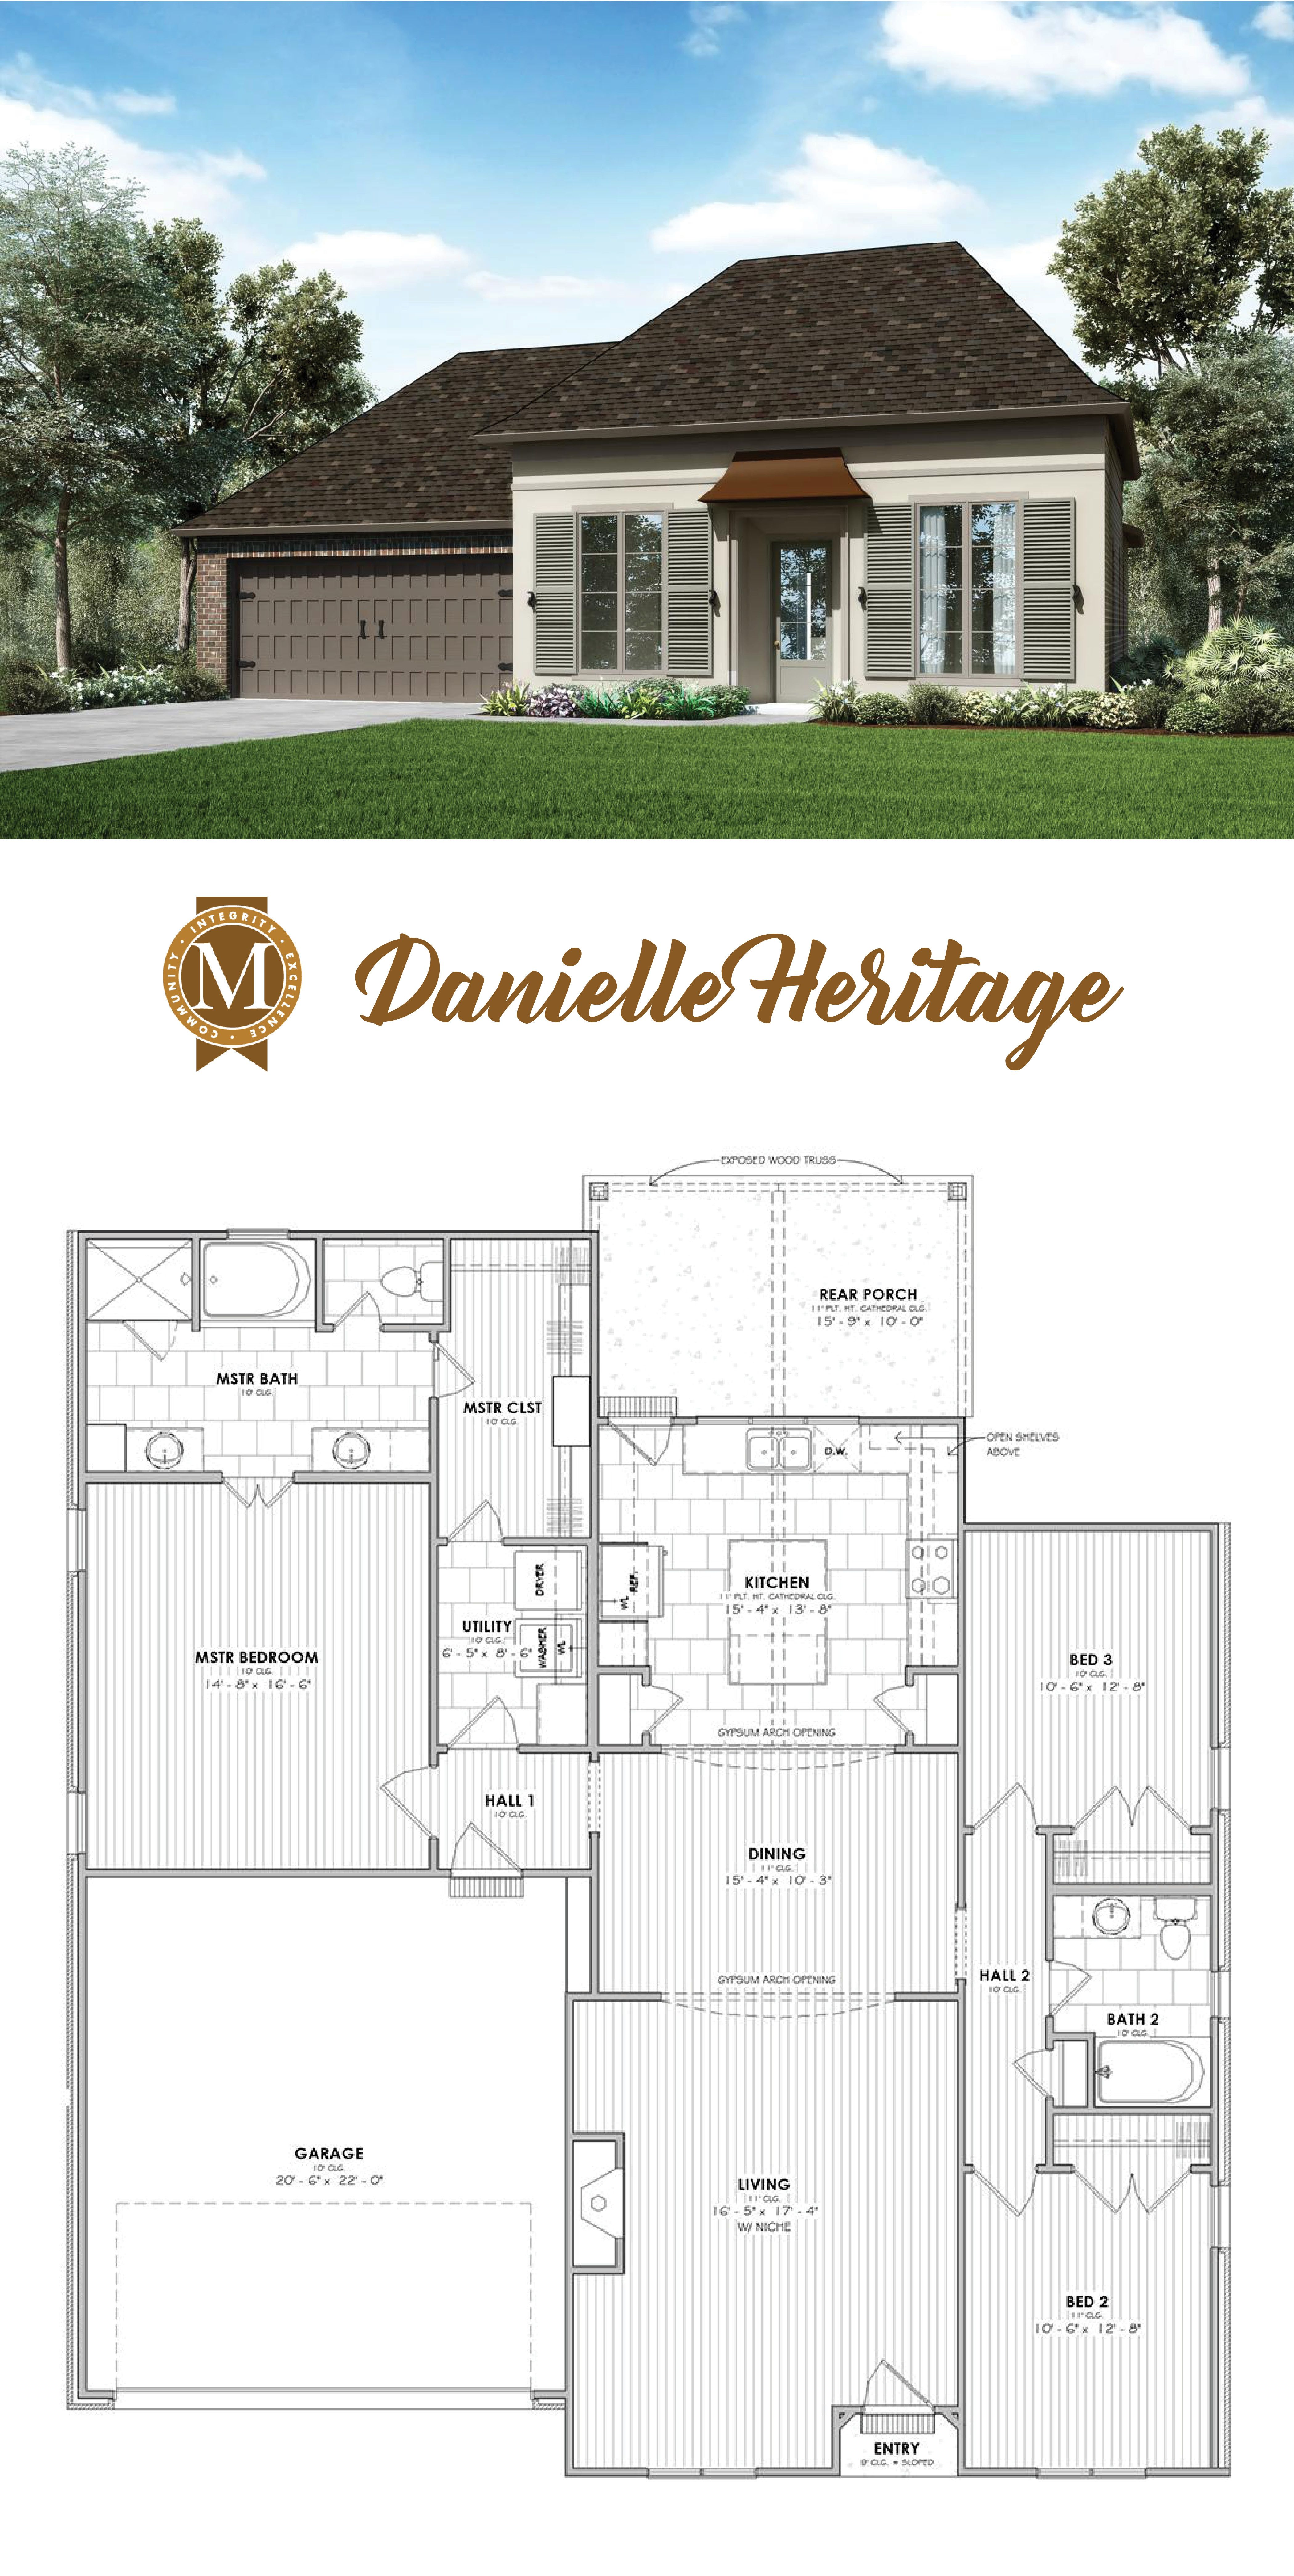 Danielle Heritage Ii Floor Plan 1 825 Square Feet 3 Bedrooms 2 Bathrooms 2 Car Garage Louisiana Lake Charles Laf Dream House Plans House Exterior Floor Plans